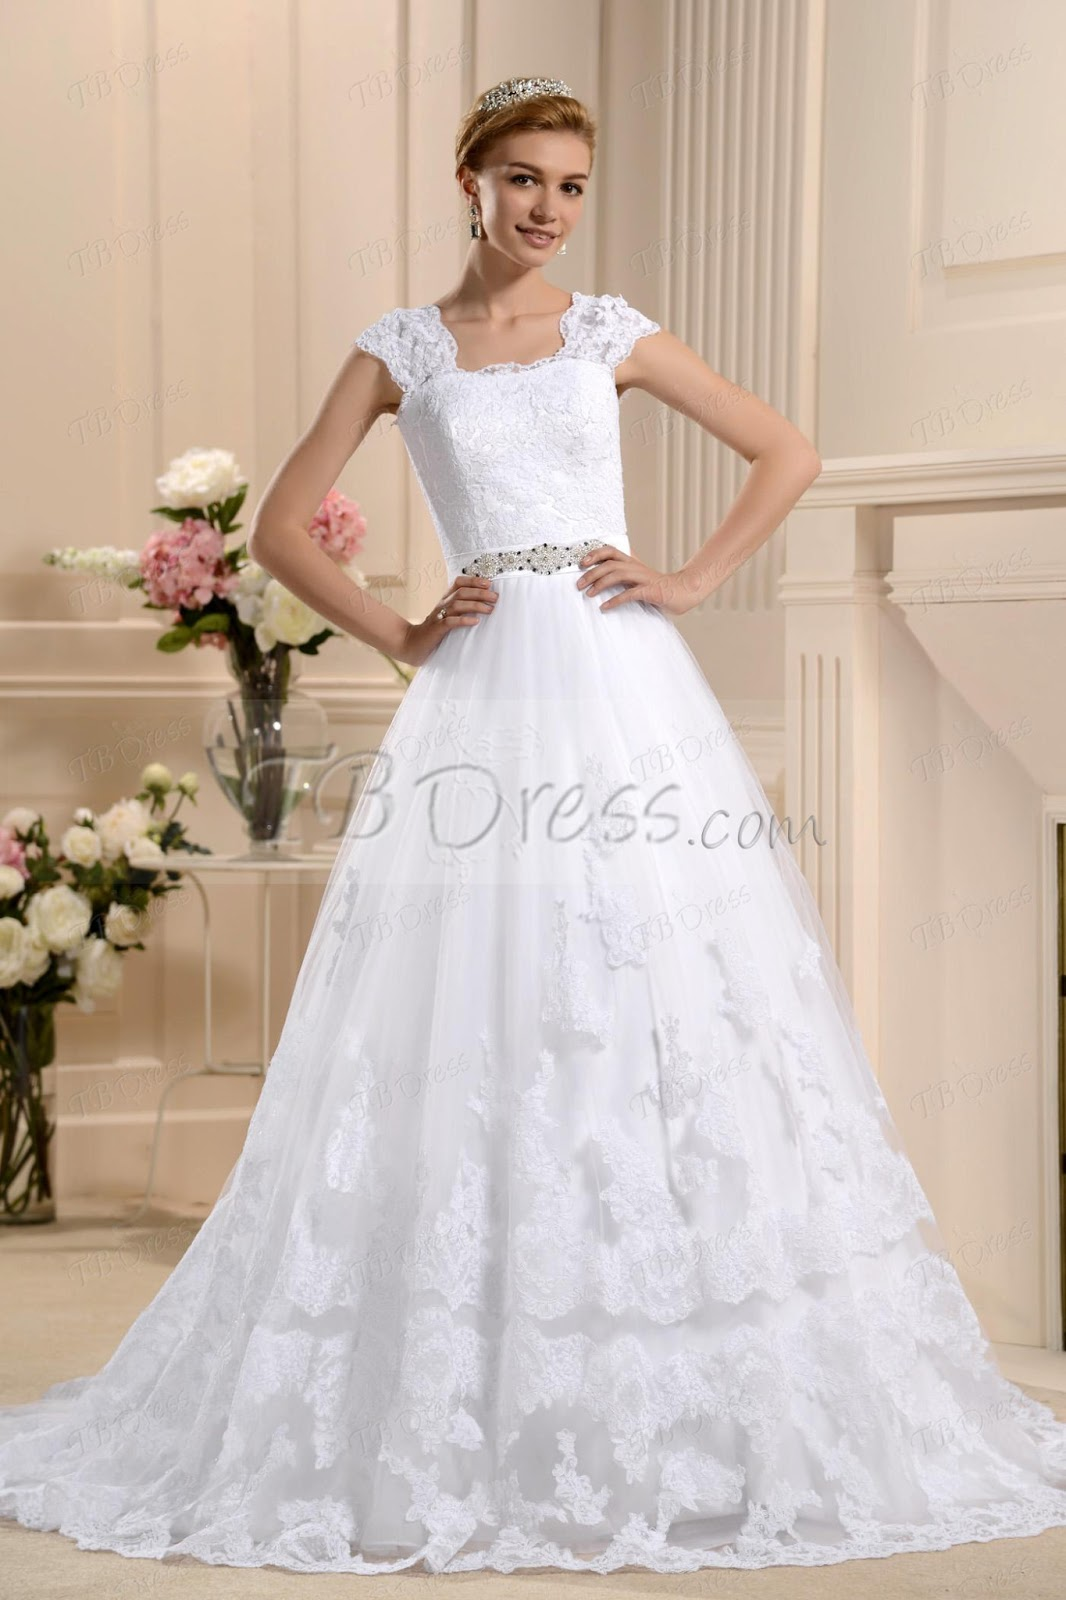 Weddings For Up To Four Weeks The Wedding Was Obviously We All Know A White Brocade Dress Long Sleeved Lady Beforehand Just An Alternative With As